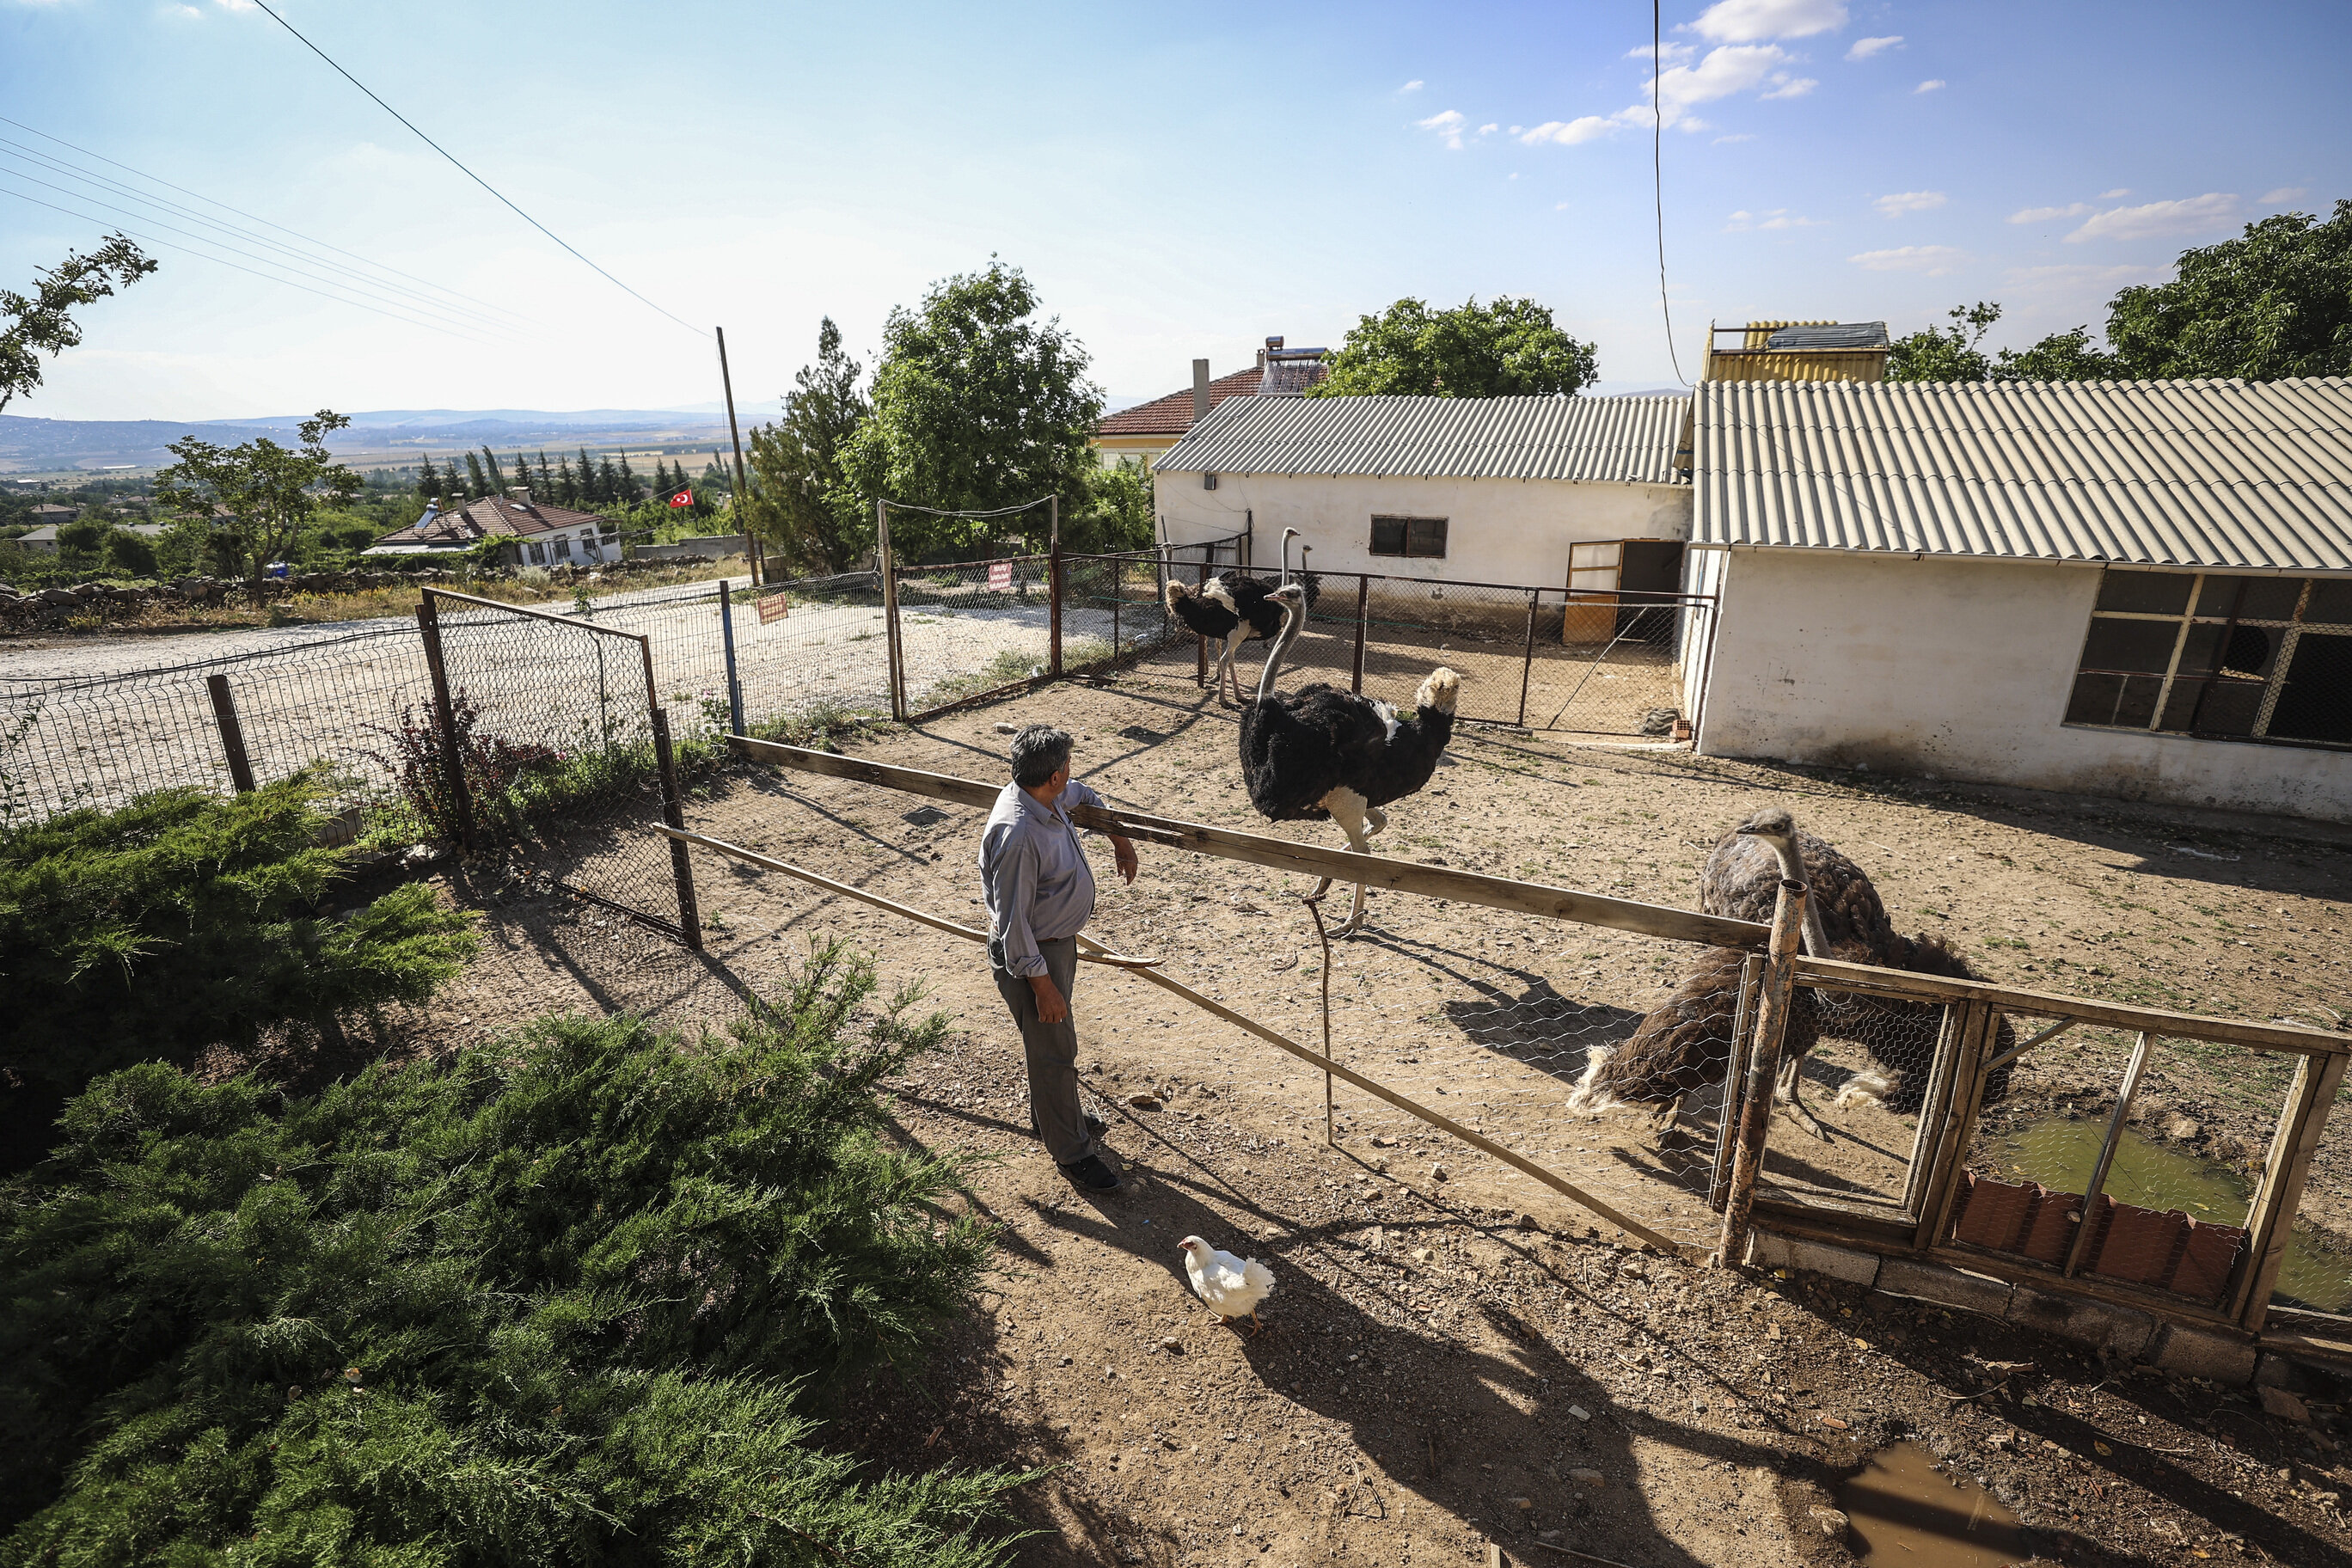 Retired Turk breeds ostriches on his farm in Kirsehir